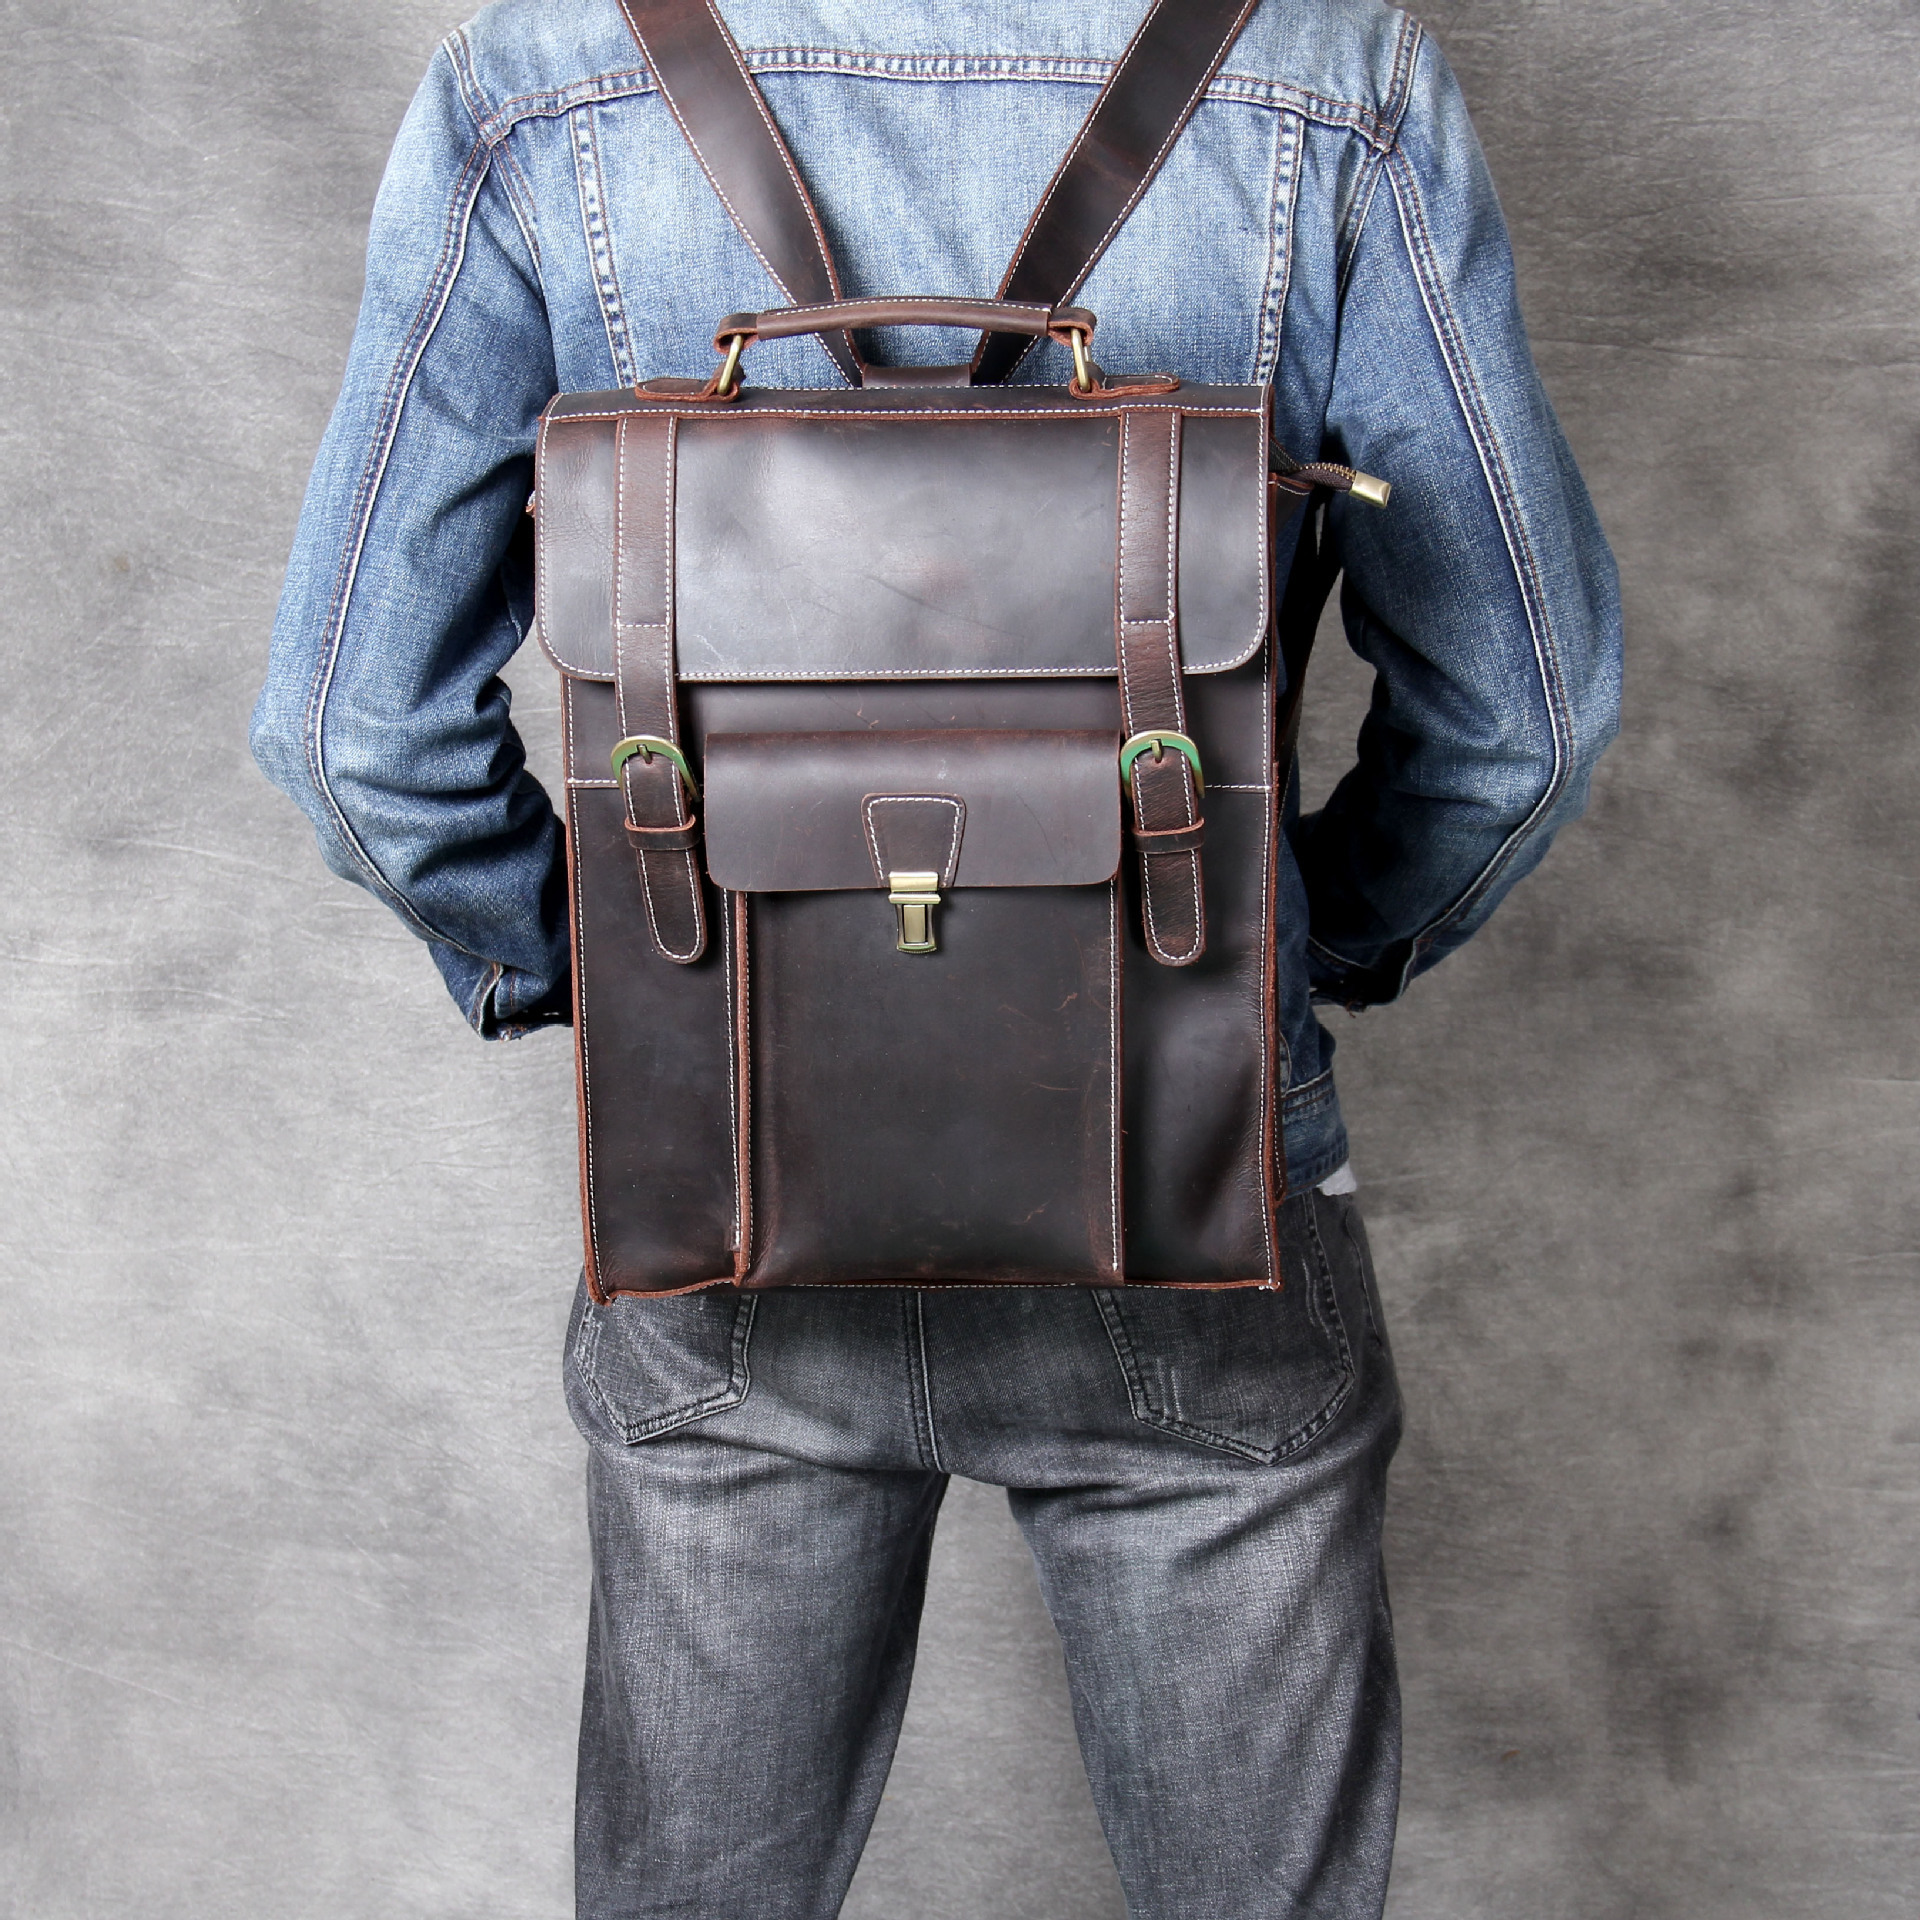 Genuine Leather Backpack Mens Bag Crazy Horse Leather Retro Coffee Daypack Cowhide Rucksack New Bag 2019 Top Quality VintageGenuine Leather Backpack Mens Bag Crazy Horse Leather Retro Coffee Daypack Cowhide Rucksack New Bag 2019 Top Quality Vintage